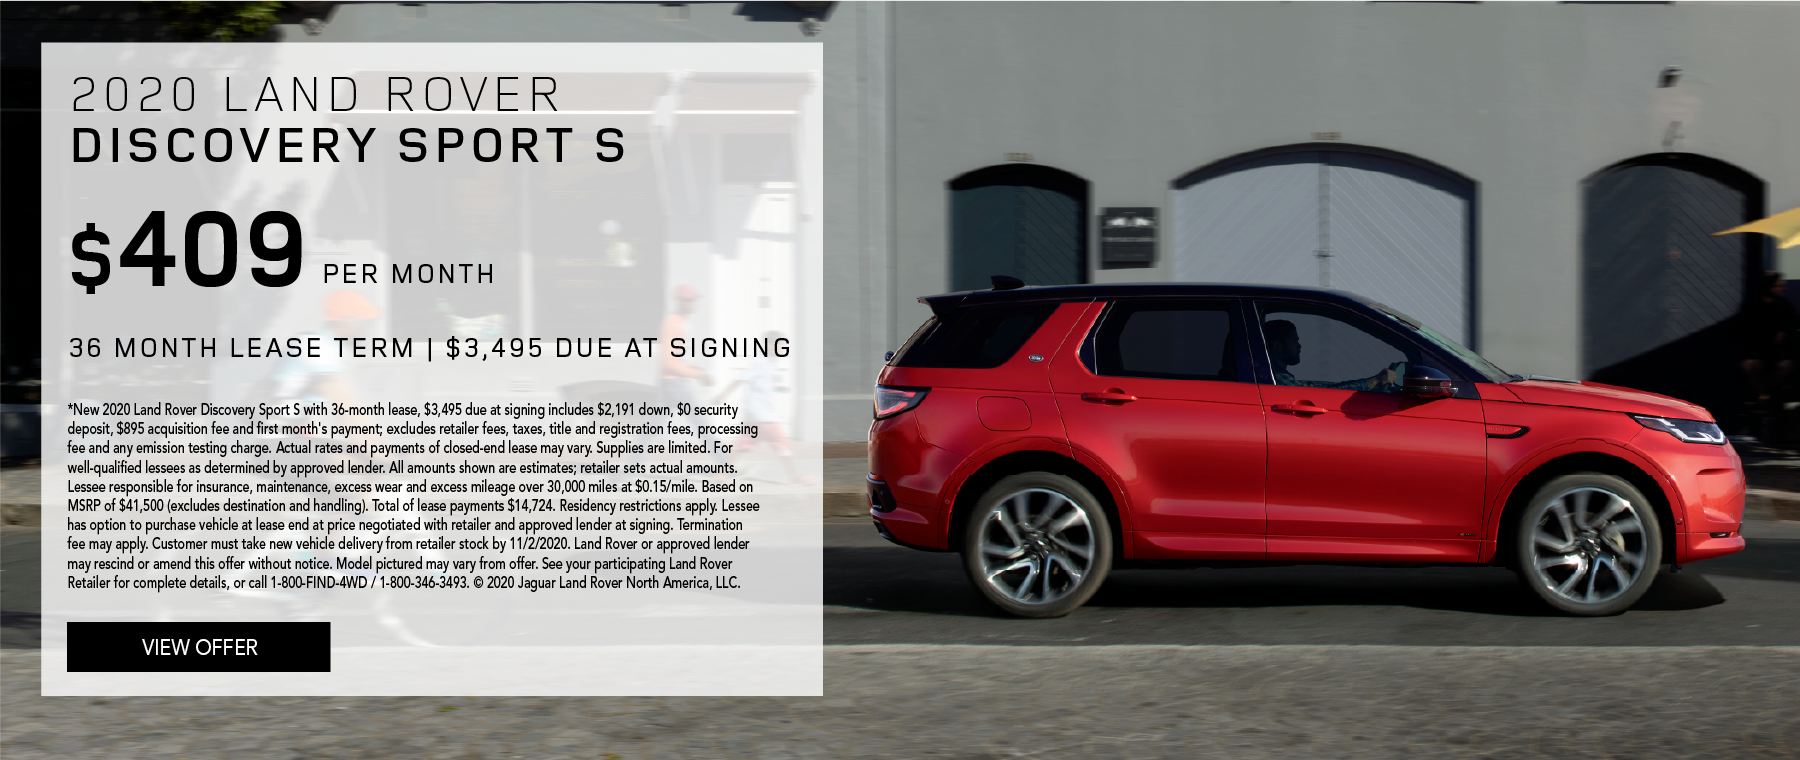 2020 LAND ROVER DISCOVERY SPORT S. $409 PER MONTH. 36 MONTH LEASE TERM. $3,495 CASH DUE AT SIGNING. $0 SECURITY DEPOSIT. 10,000 MILES PER YEAR. EXCLUDES RETAILER FEES, TAXES, TITLE AND REGISTRATION FEES, PROCESSING FEE AND ANY EMISSION TESTING CHARGE. ENDS 11/2/2020.